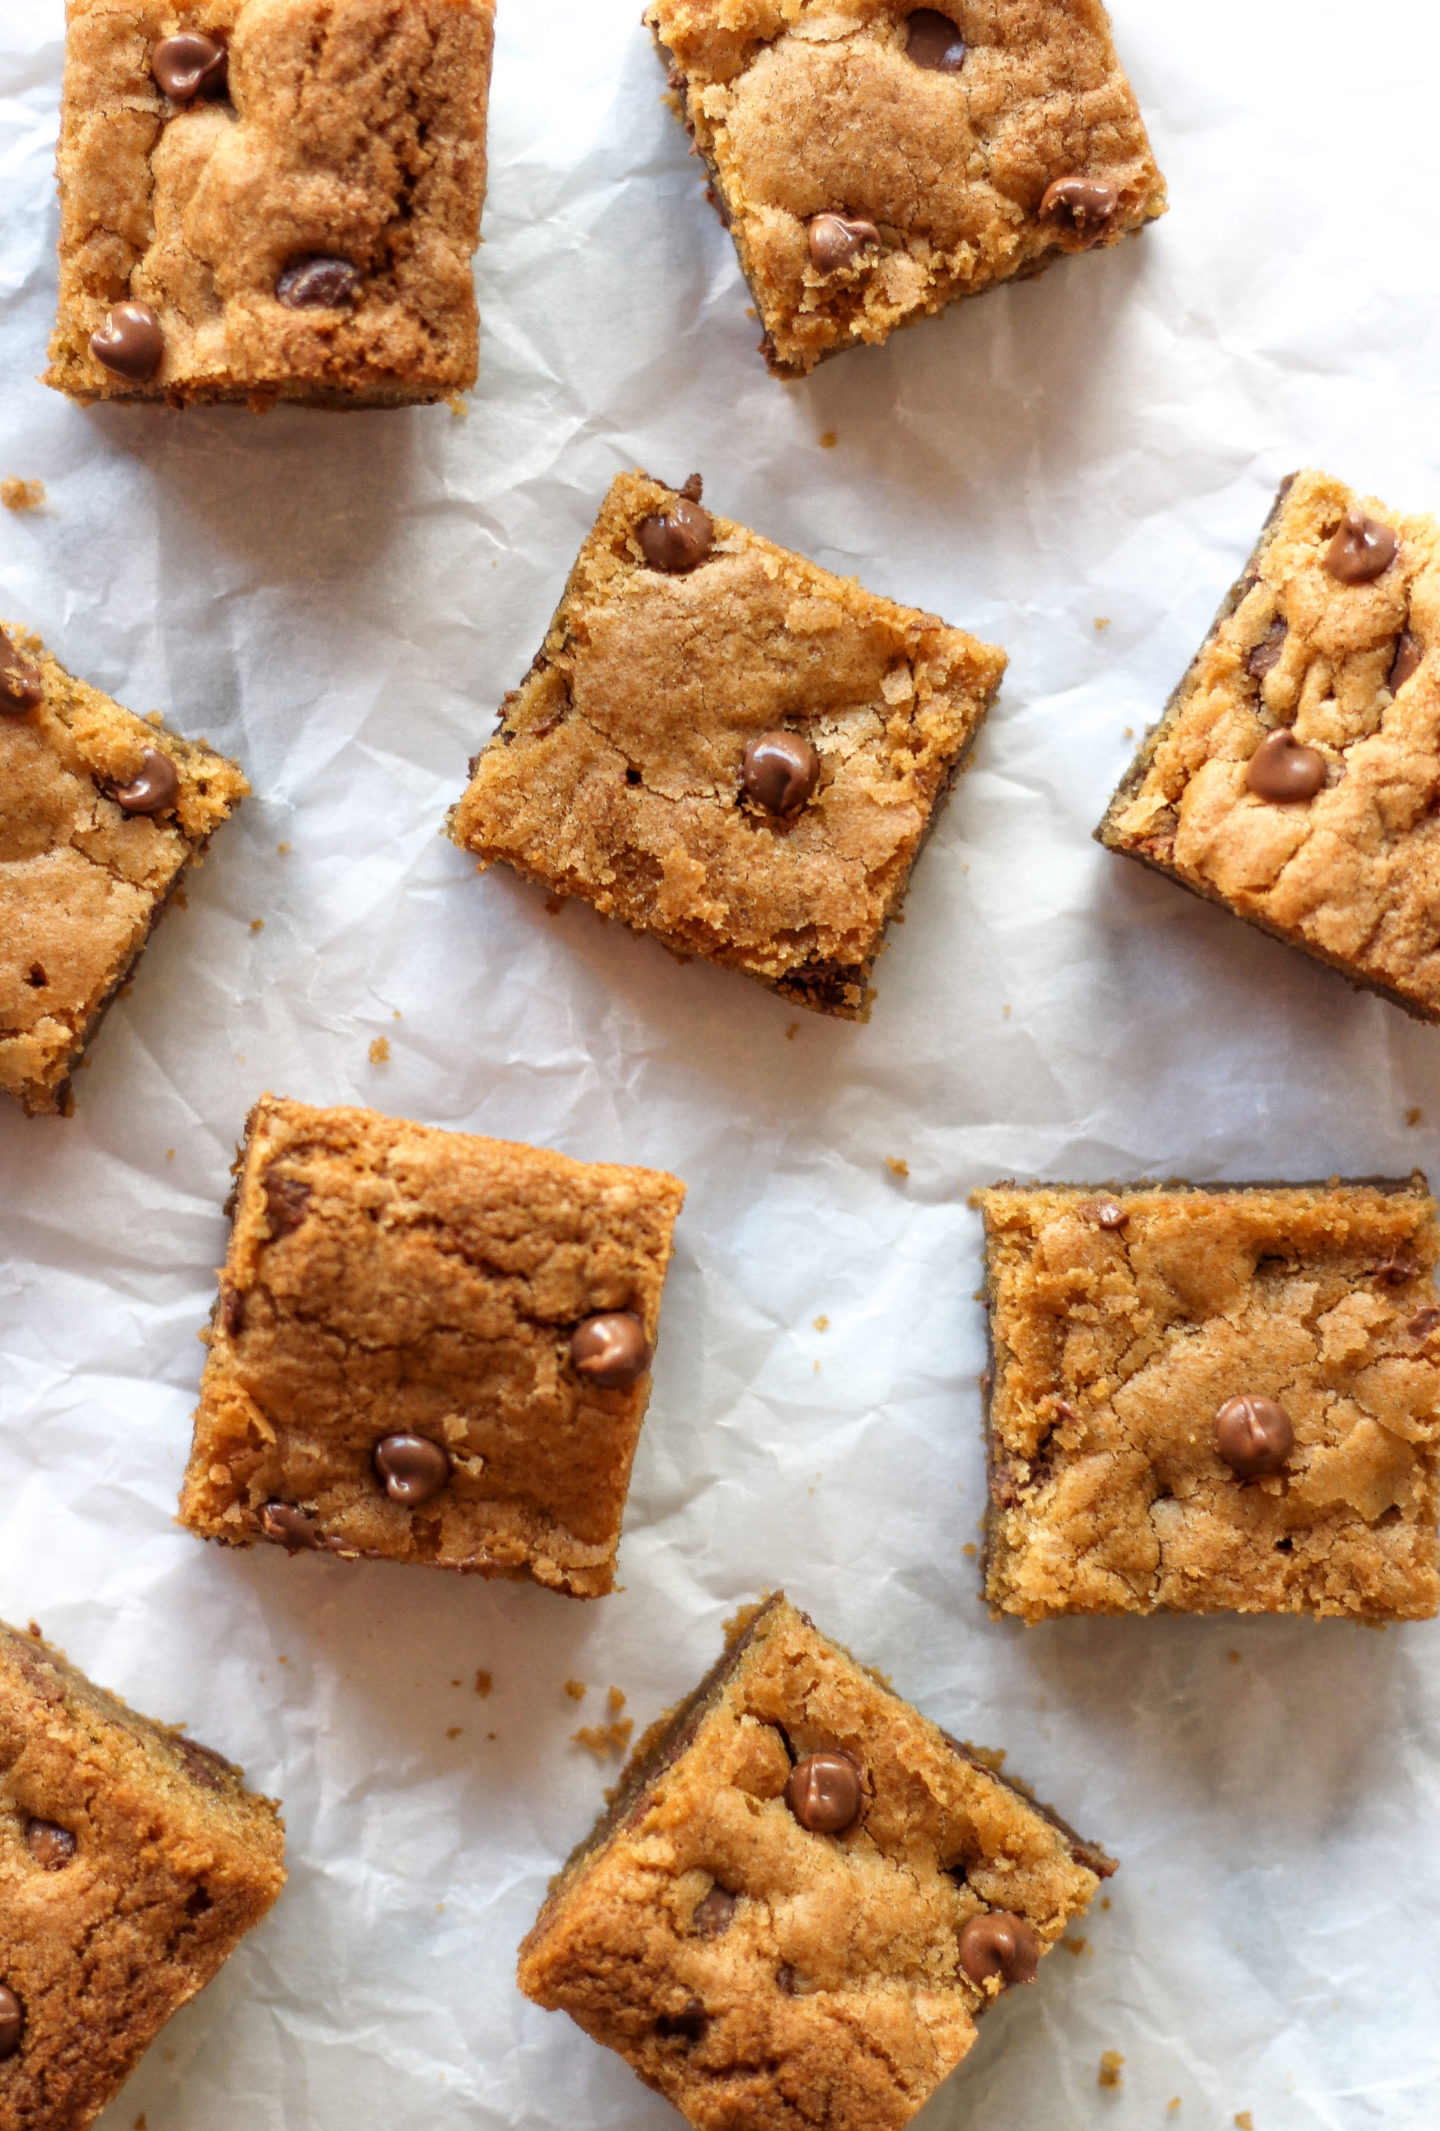 overhead view of chewy chocolate chip cookie bars on parchment paper